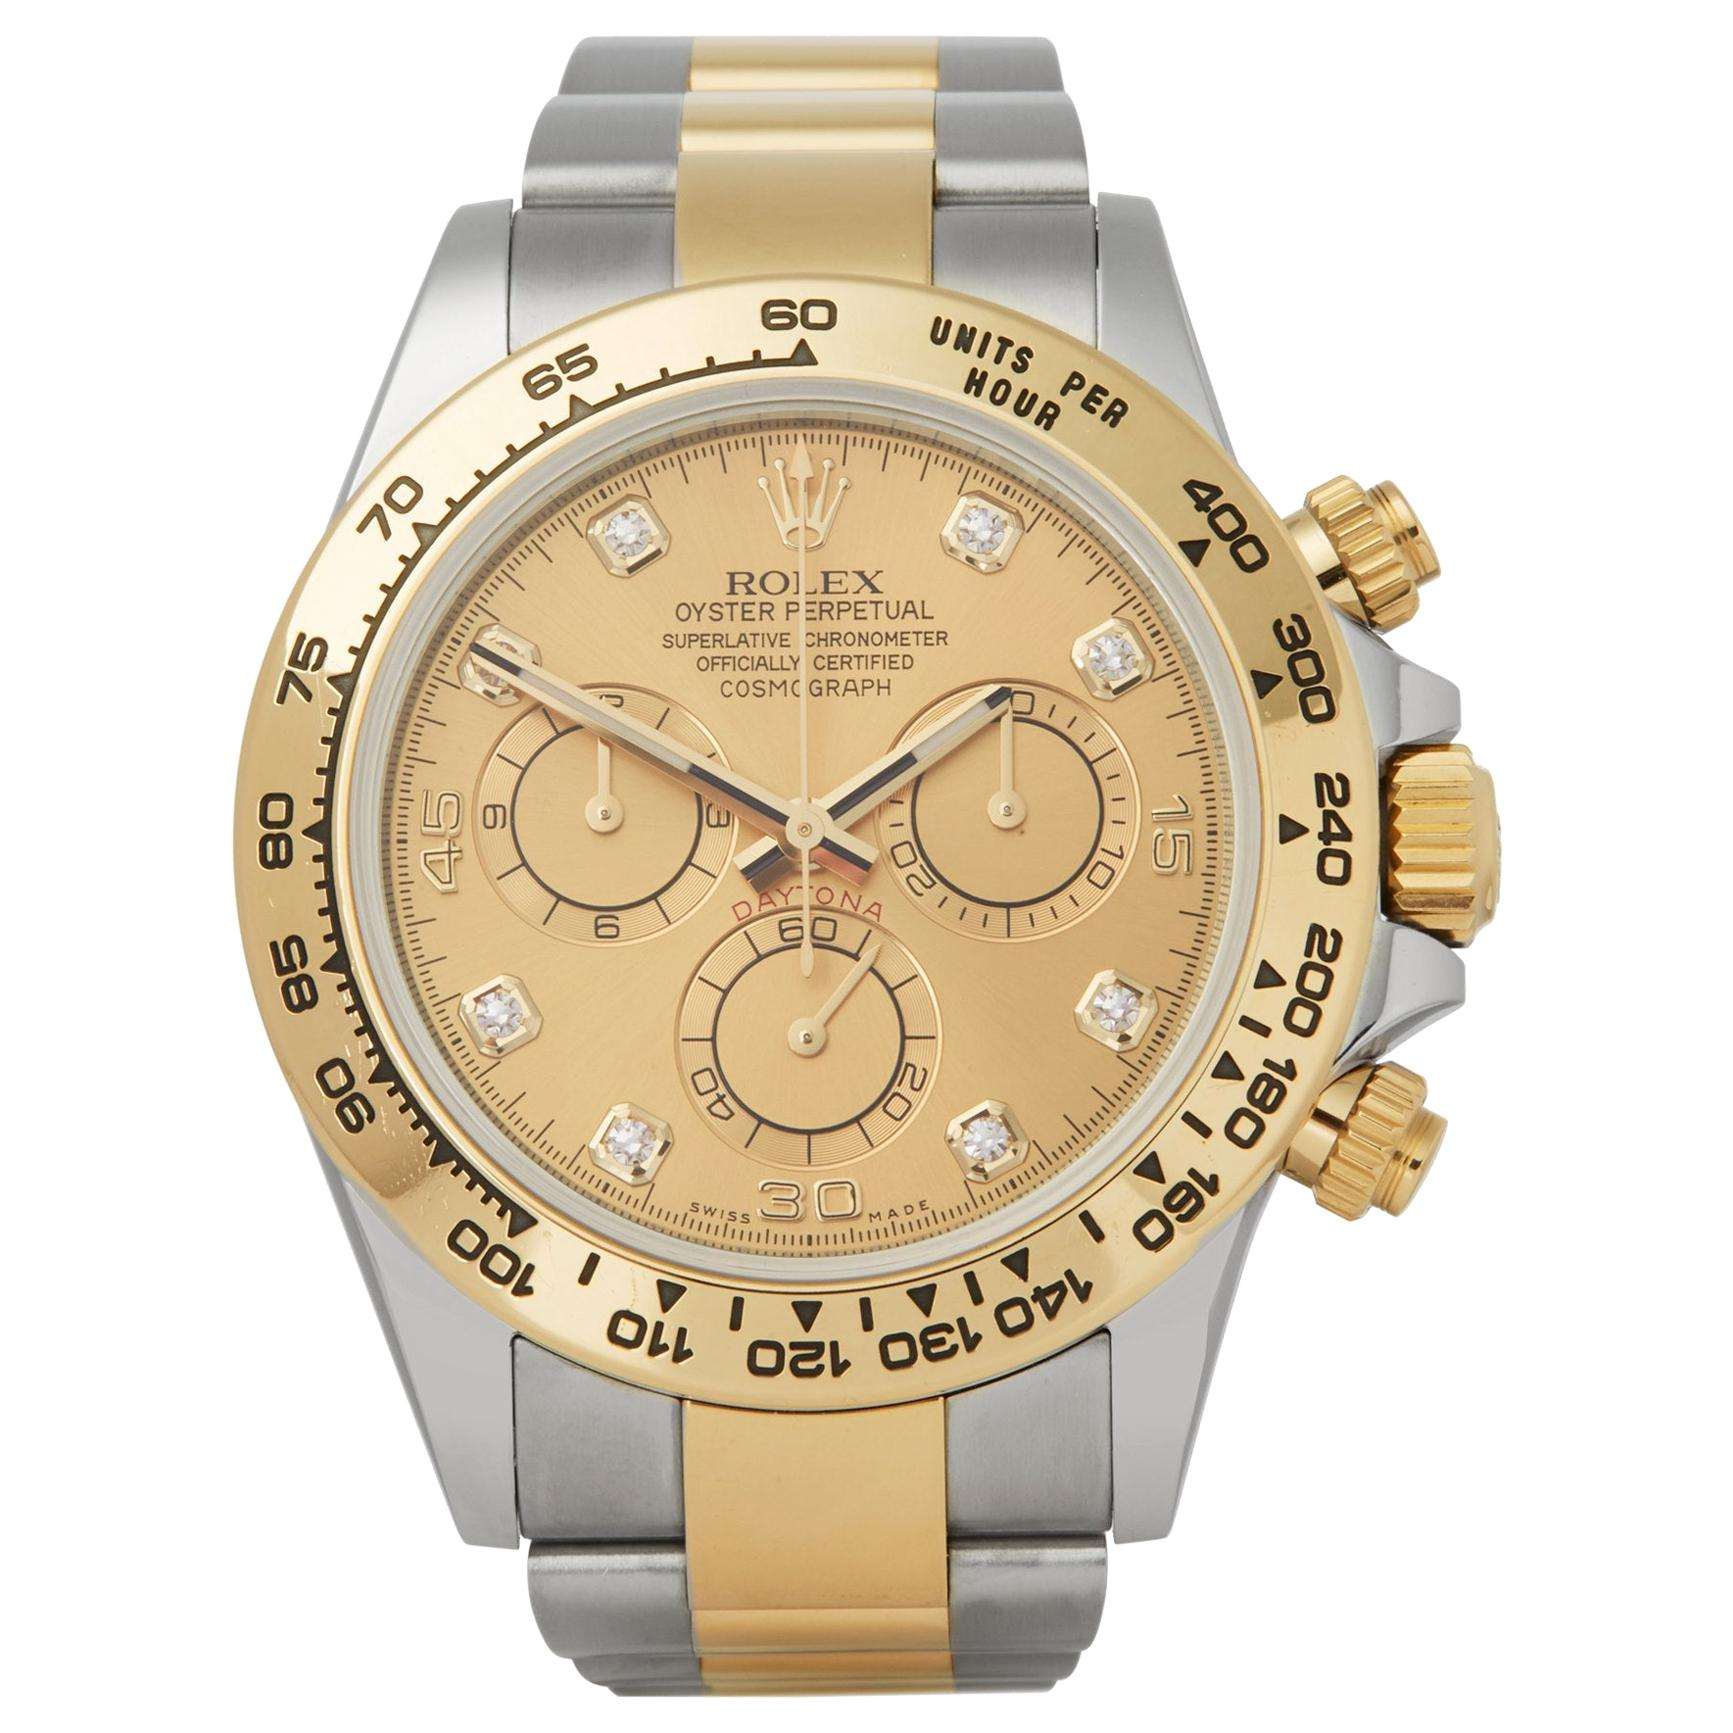 Rolex Daytona 0 116503 Men's Stainless Steel and Yellow Gold Watch